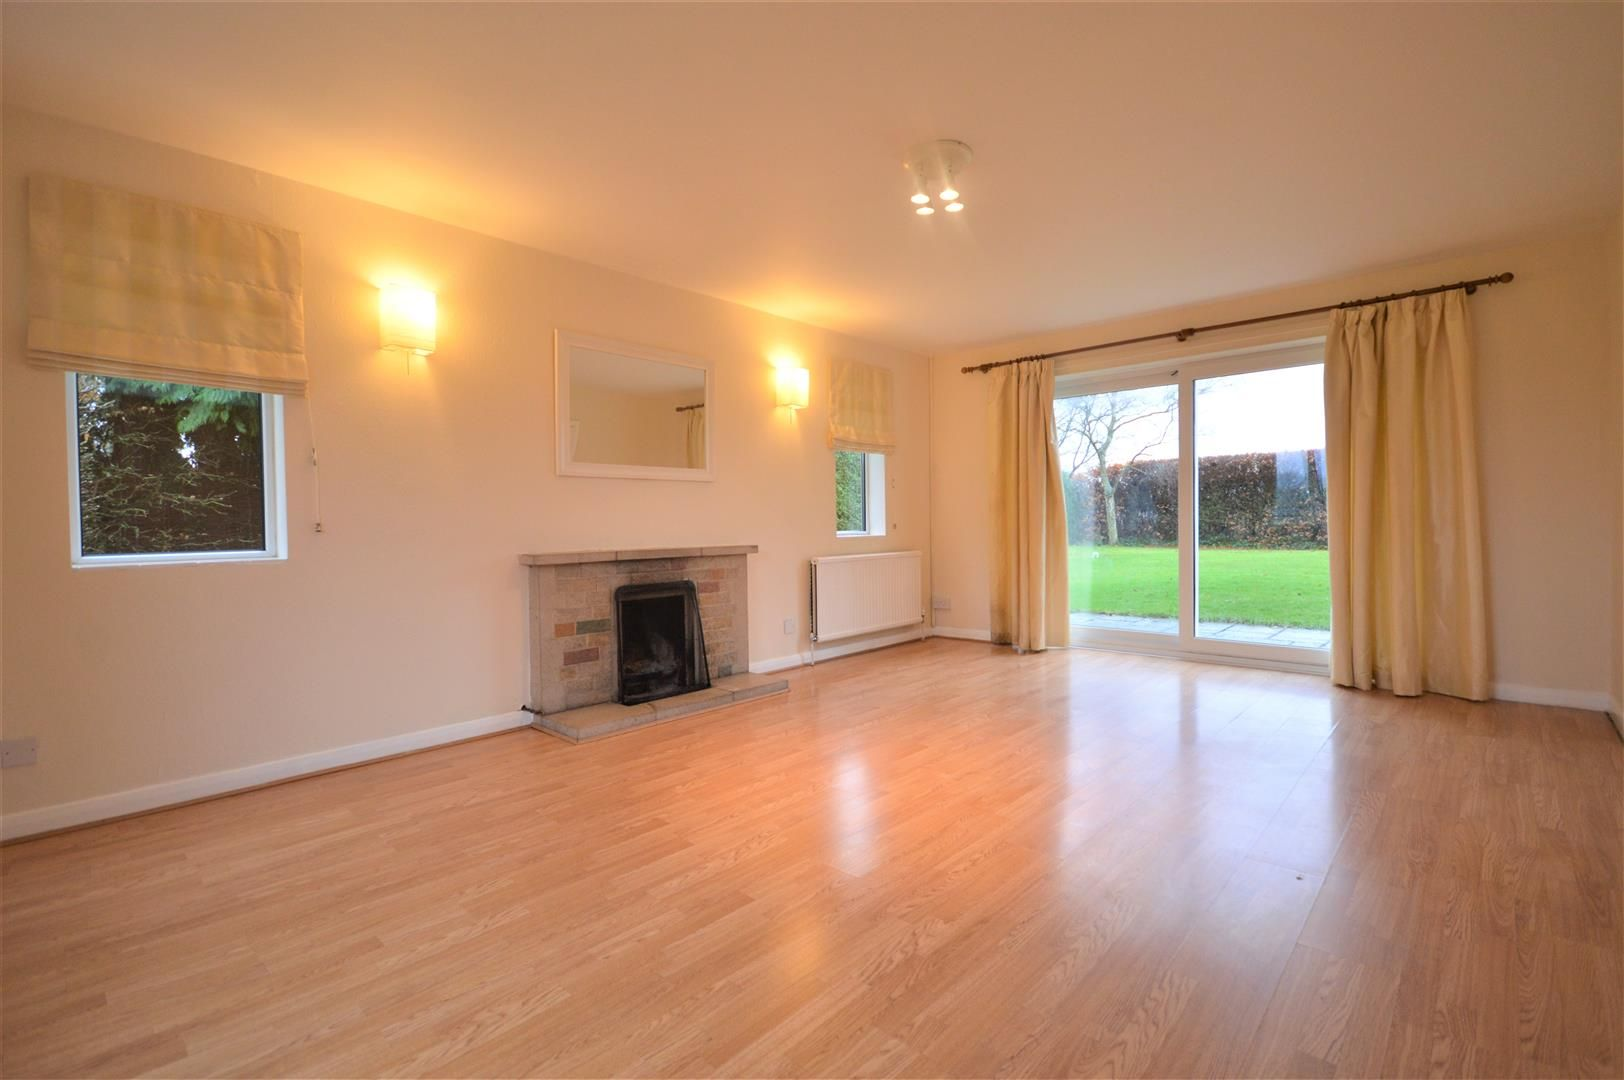 4 bed detached to rent in Kingsland 3